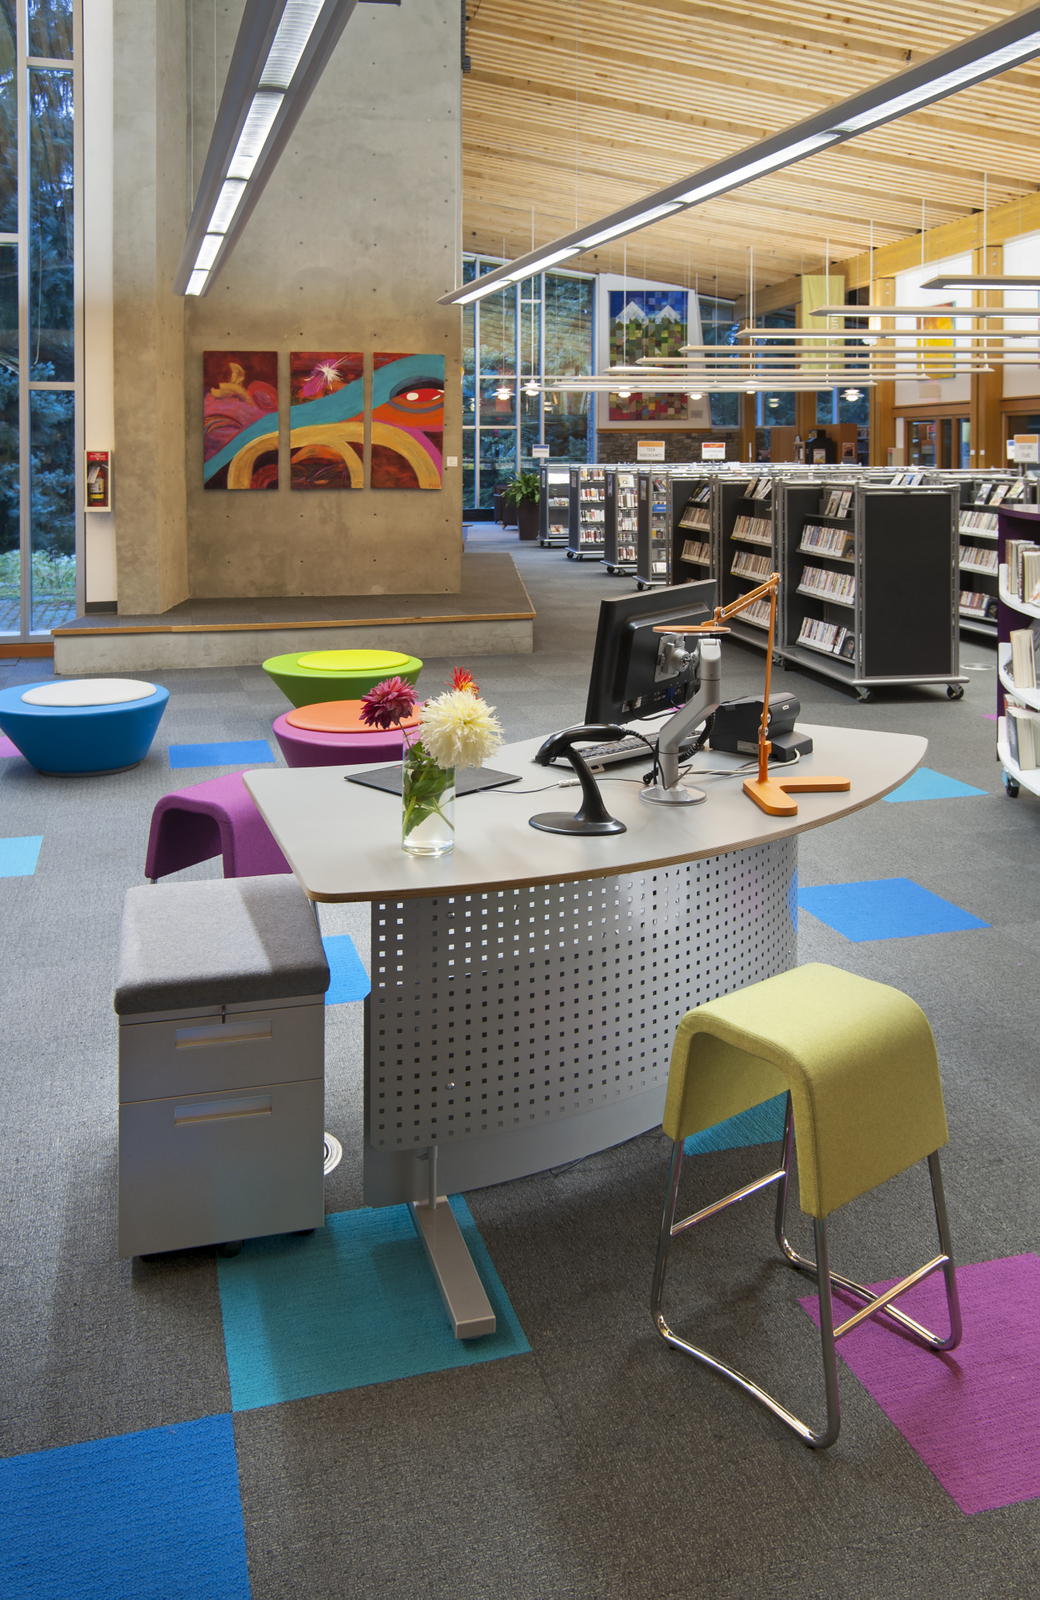 New Modern Library Furniture Seen In British Columbia Canada